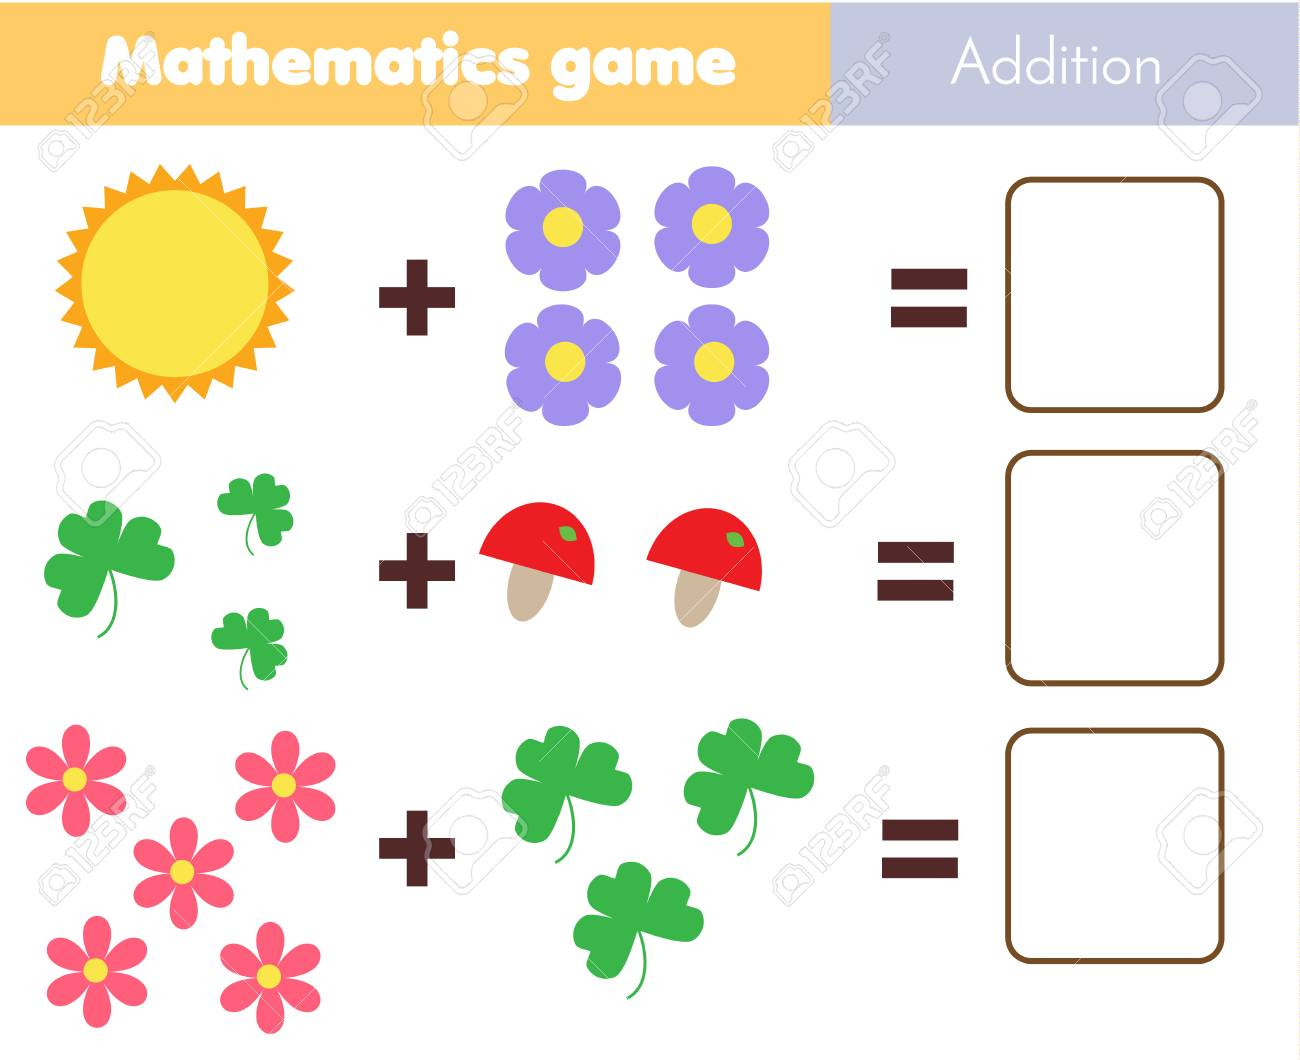 Mathematics worksheet. educational game for children. Learning..